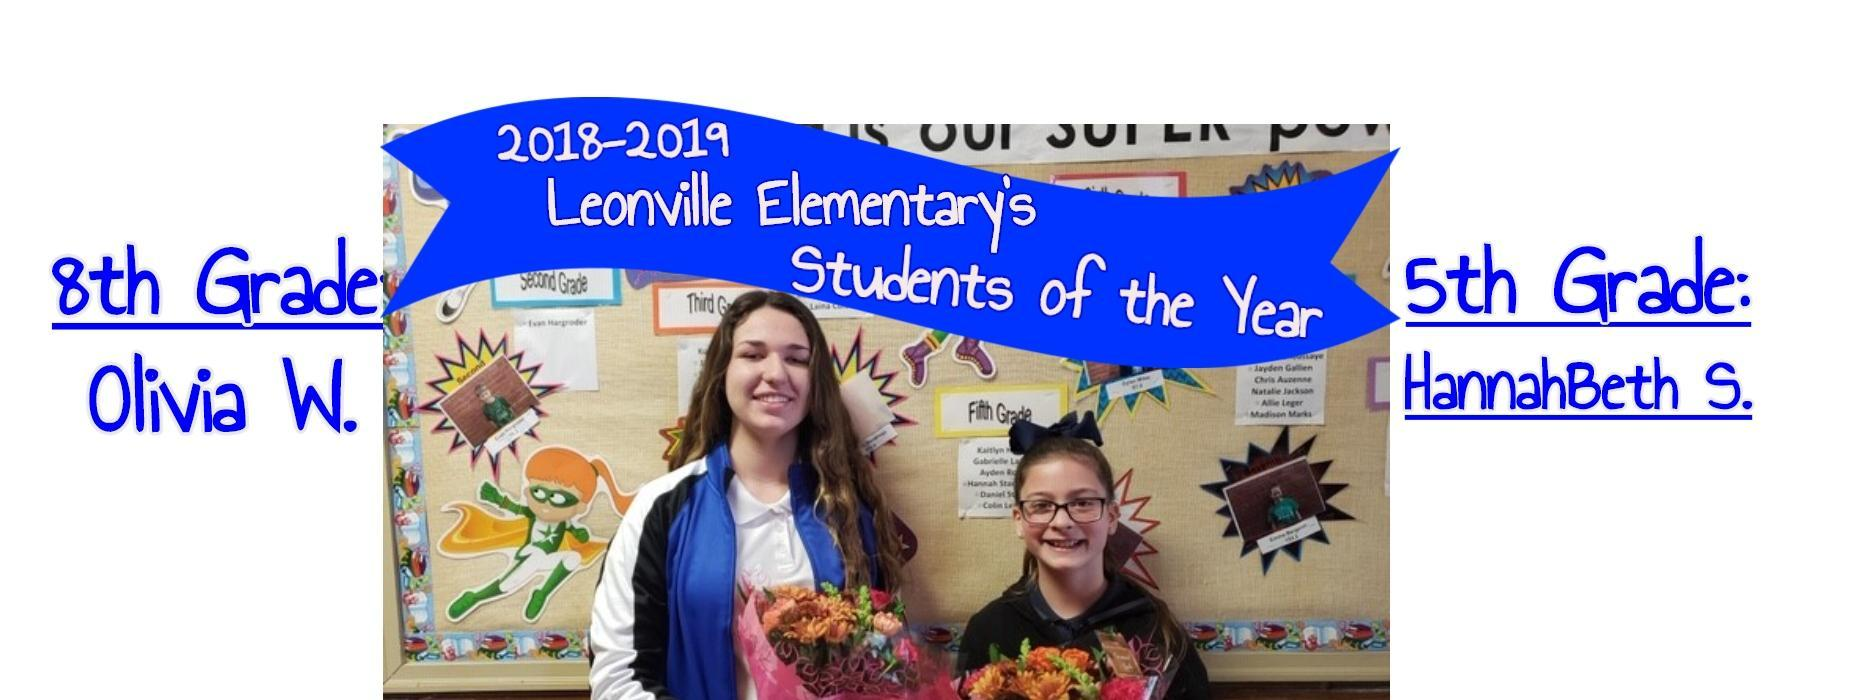 Leonville Elementary's Students of the Year; 8th Grade: Olivia W. & 5th Grade: HannahBeth S.